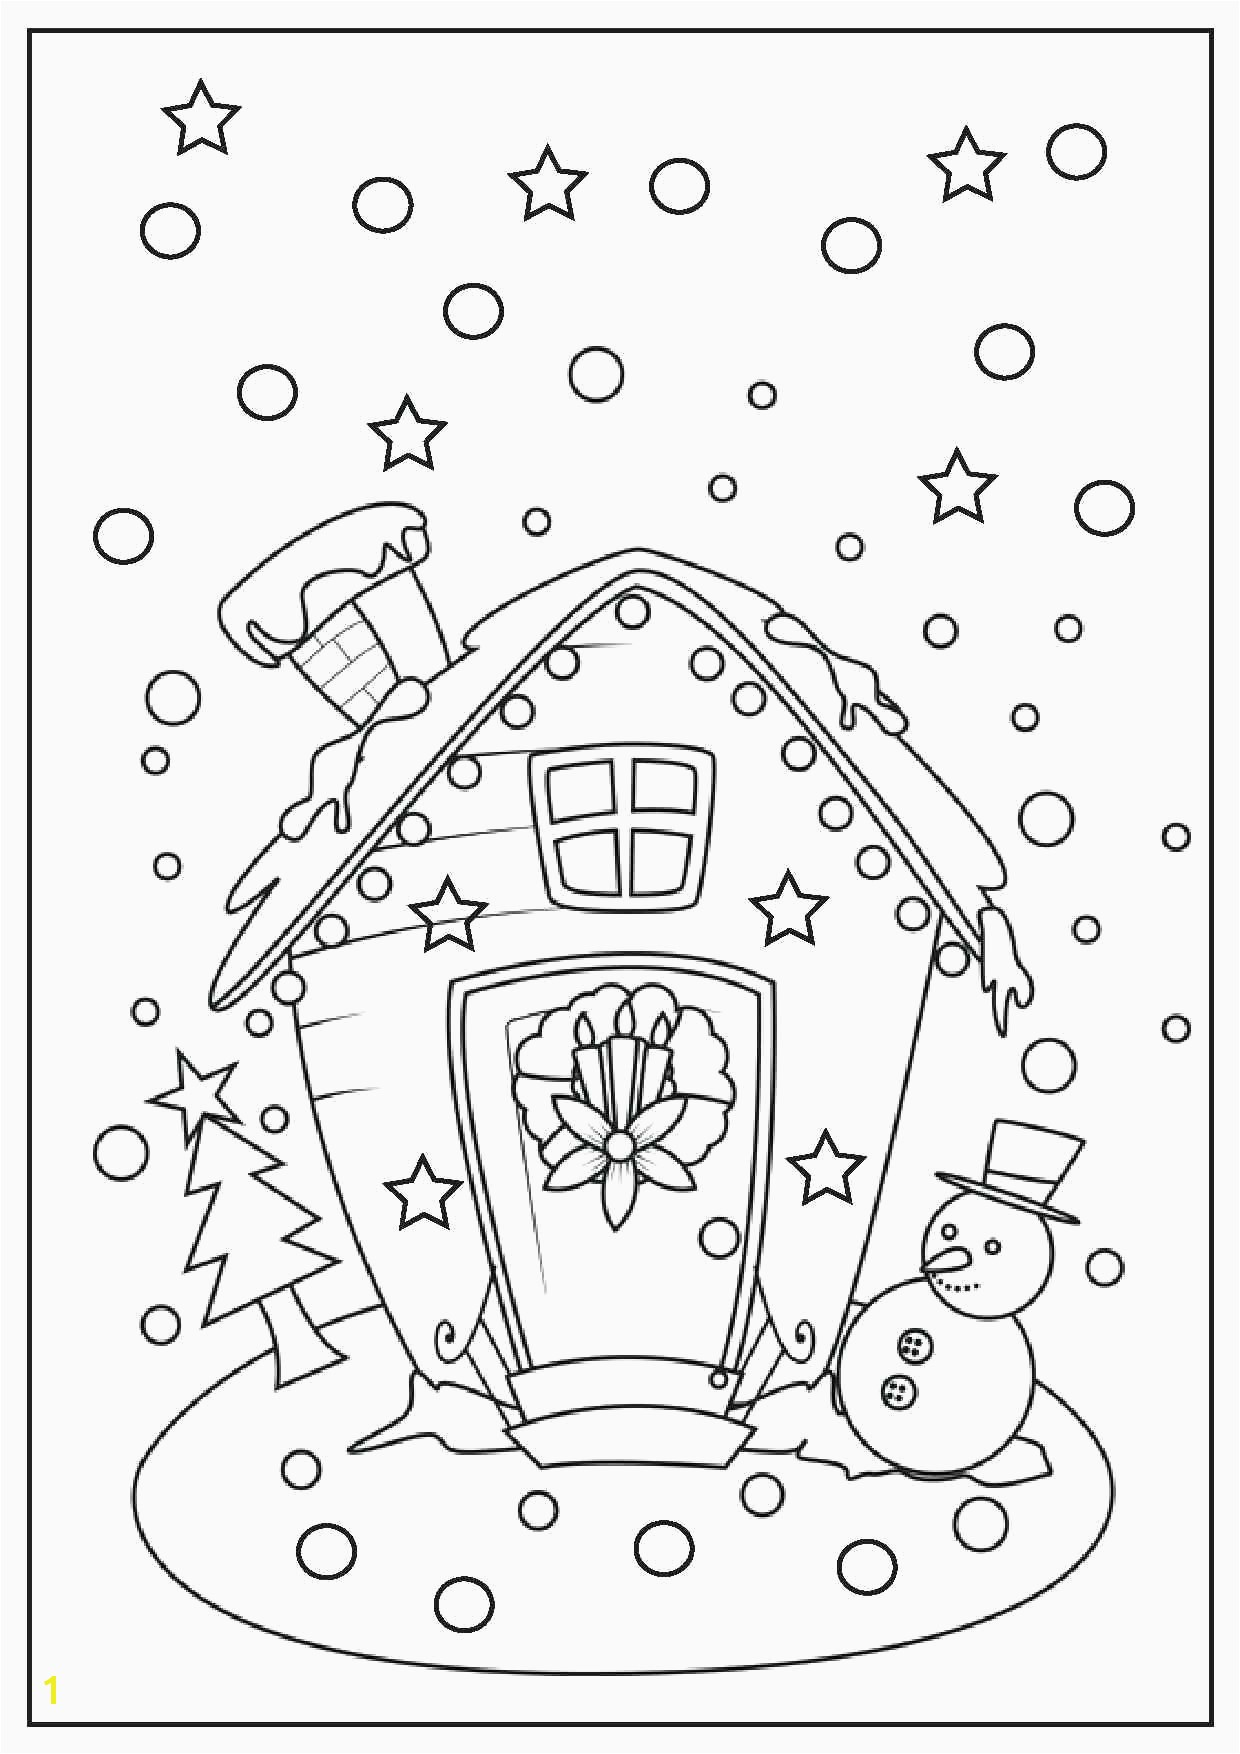 Disney Princess Printable Coloring Pages Unique Cool Coloring Page Unique Witch Coloring Pages New Crayola Pages